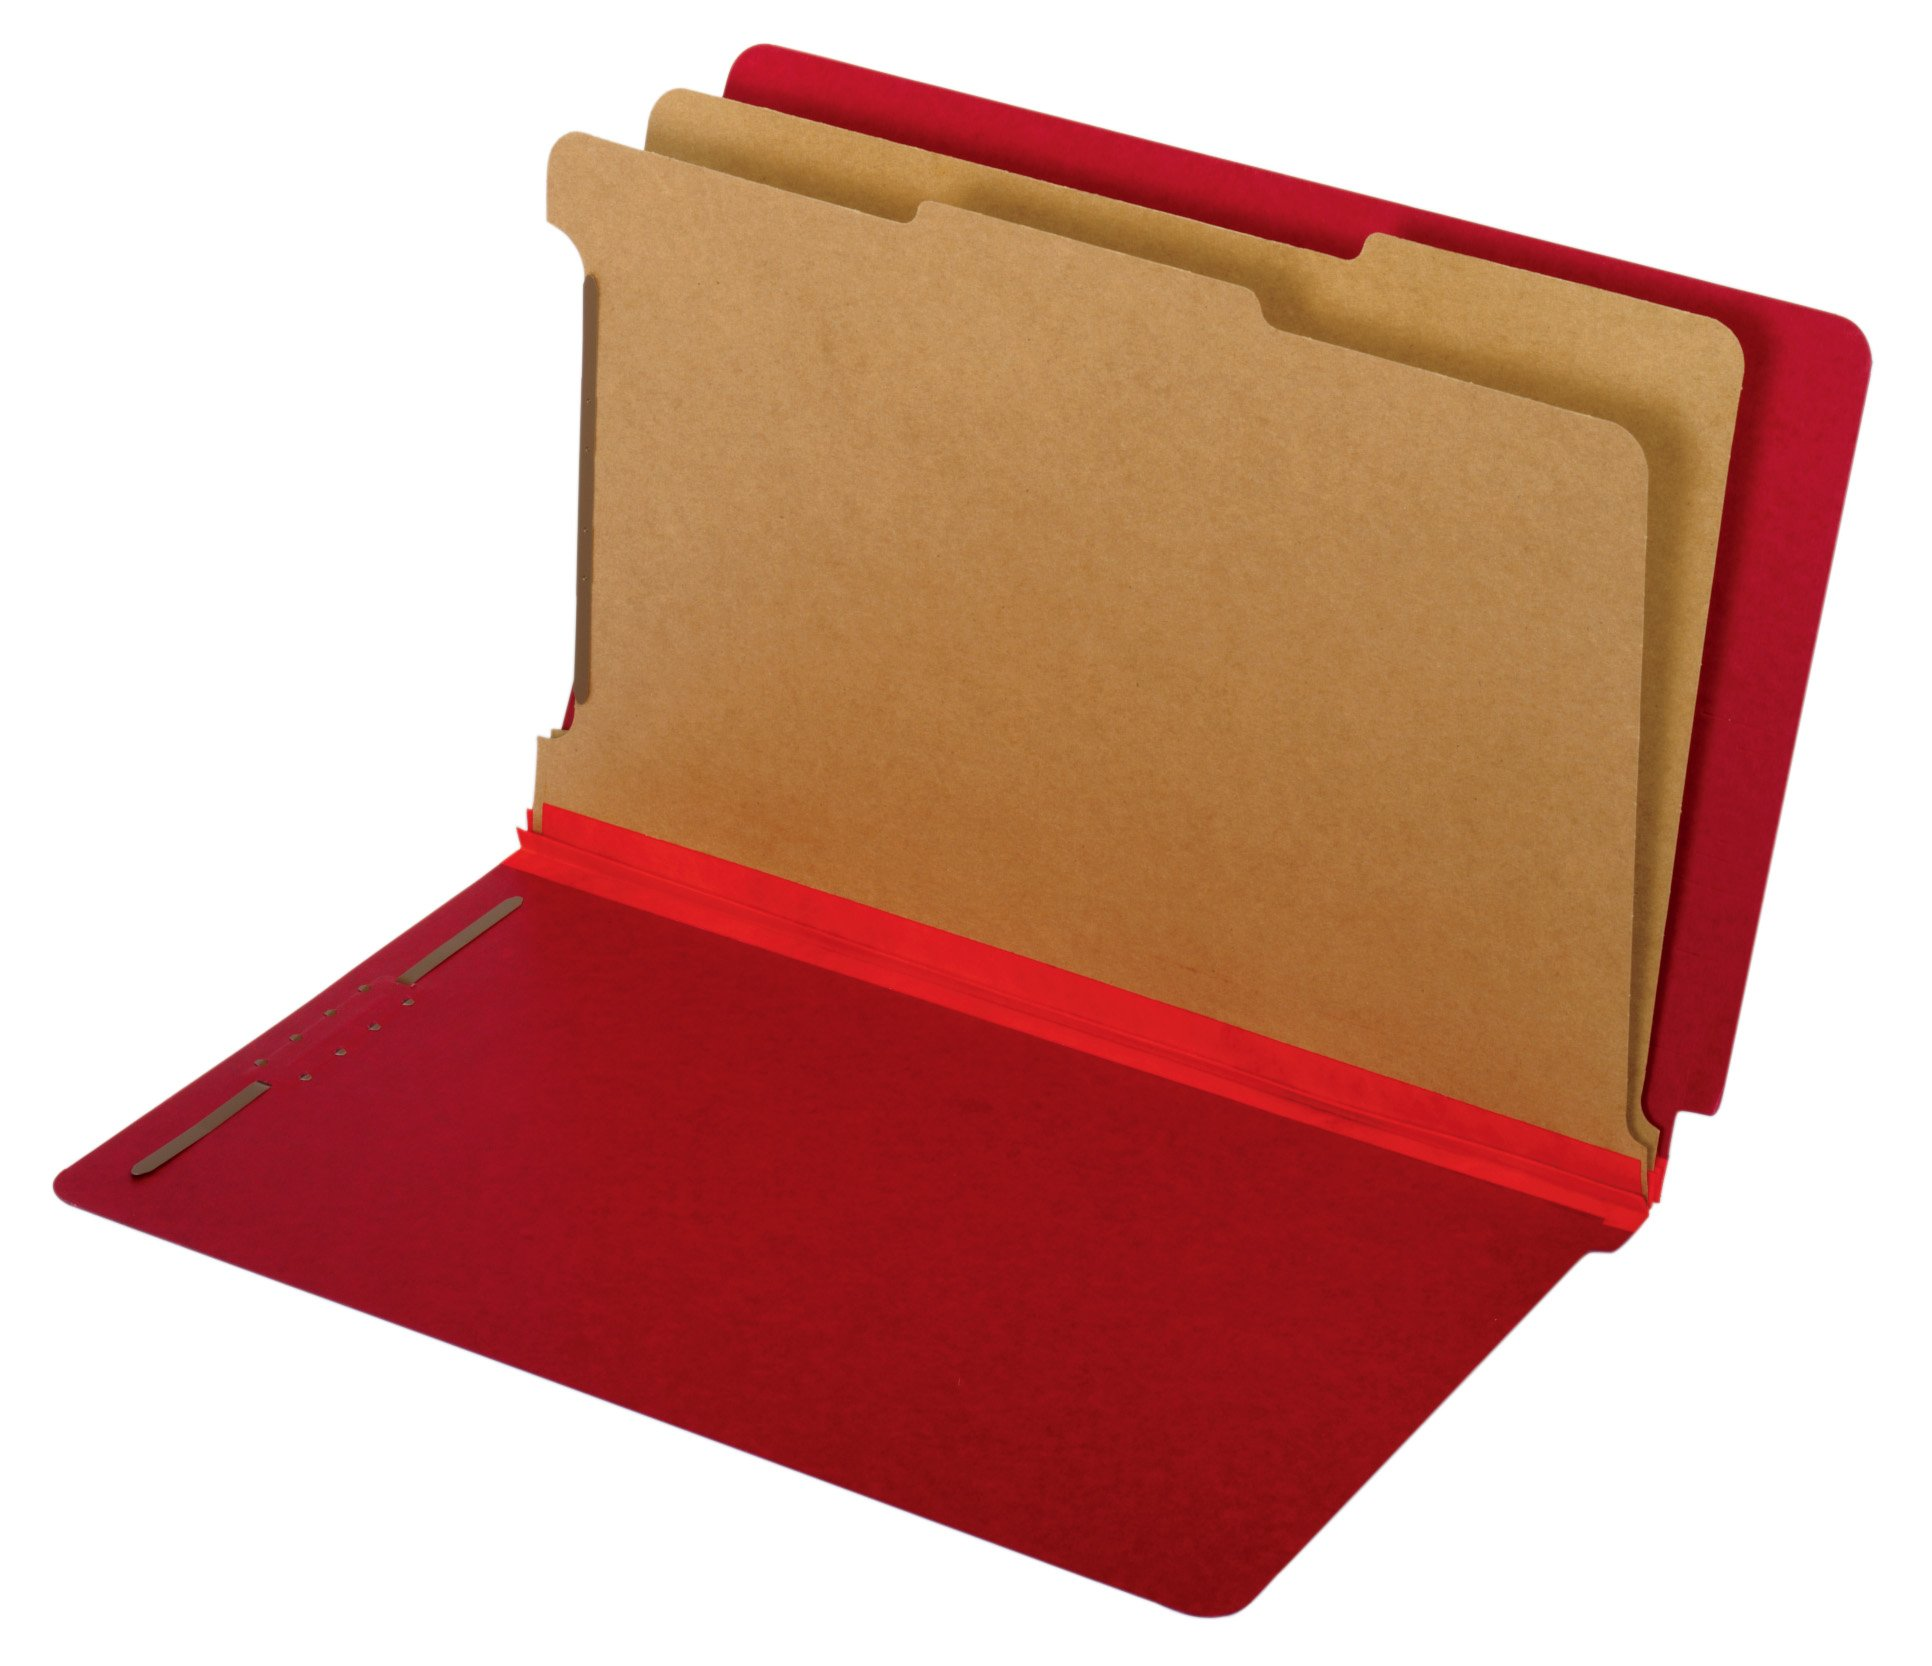 Globe-Weis/Pendaflex End Tab Classification Folders, 2 Dividers, 2-Inch Embedded Fasteners, Legal Size, Dark Red, 10 Folders Per Box (39783)